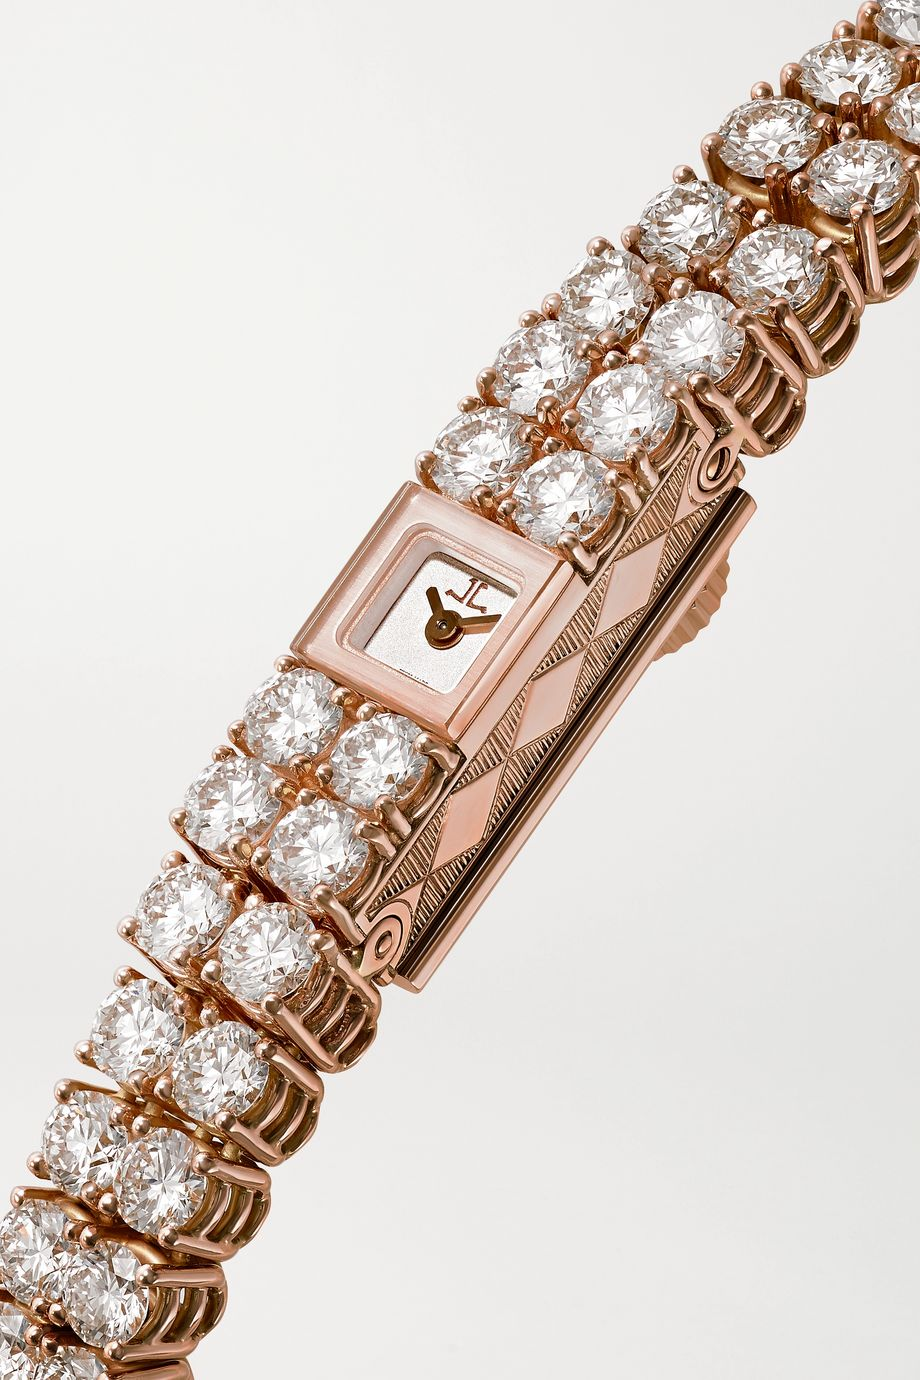 Jaeger-LeCoultre 101 Reine 6.8mm 18-karat rose gold and diamond watch